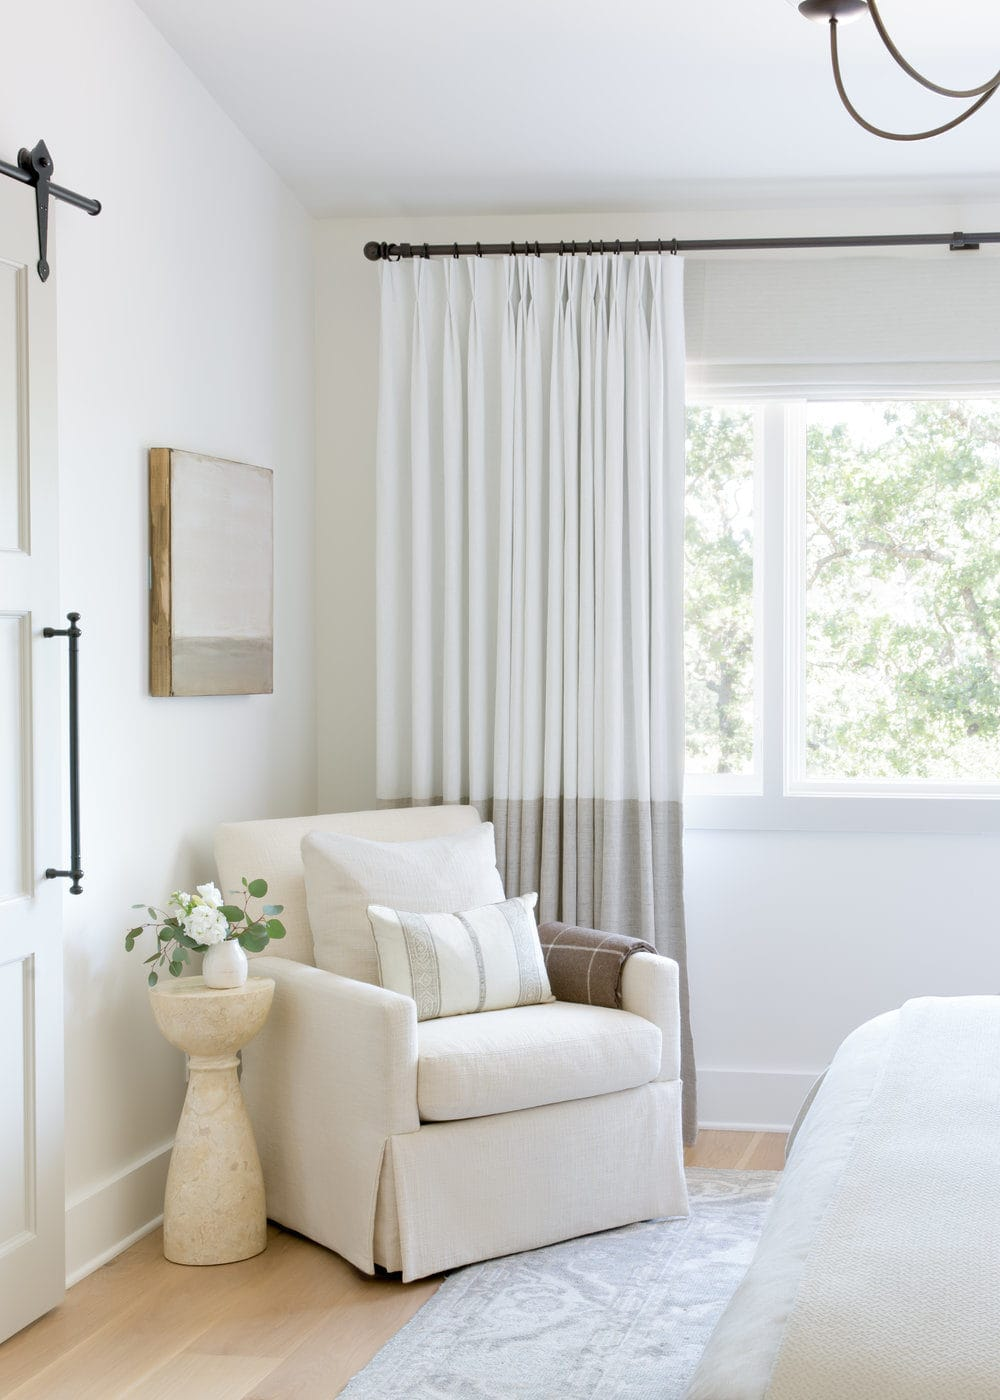 white curtains in a bedroom